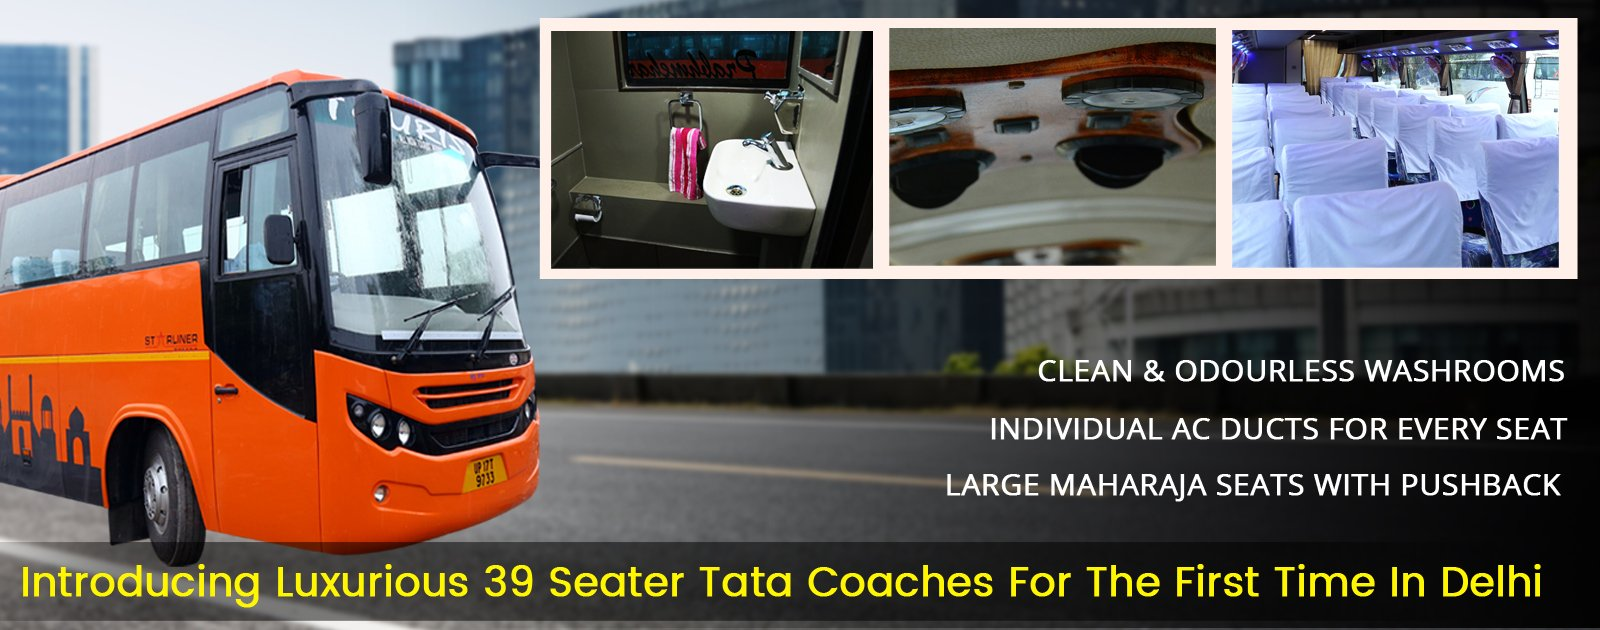 volvo bus service in delhi, volvo bus booking in delhi ncr, volvo bus hire in new delhi